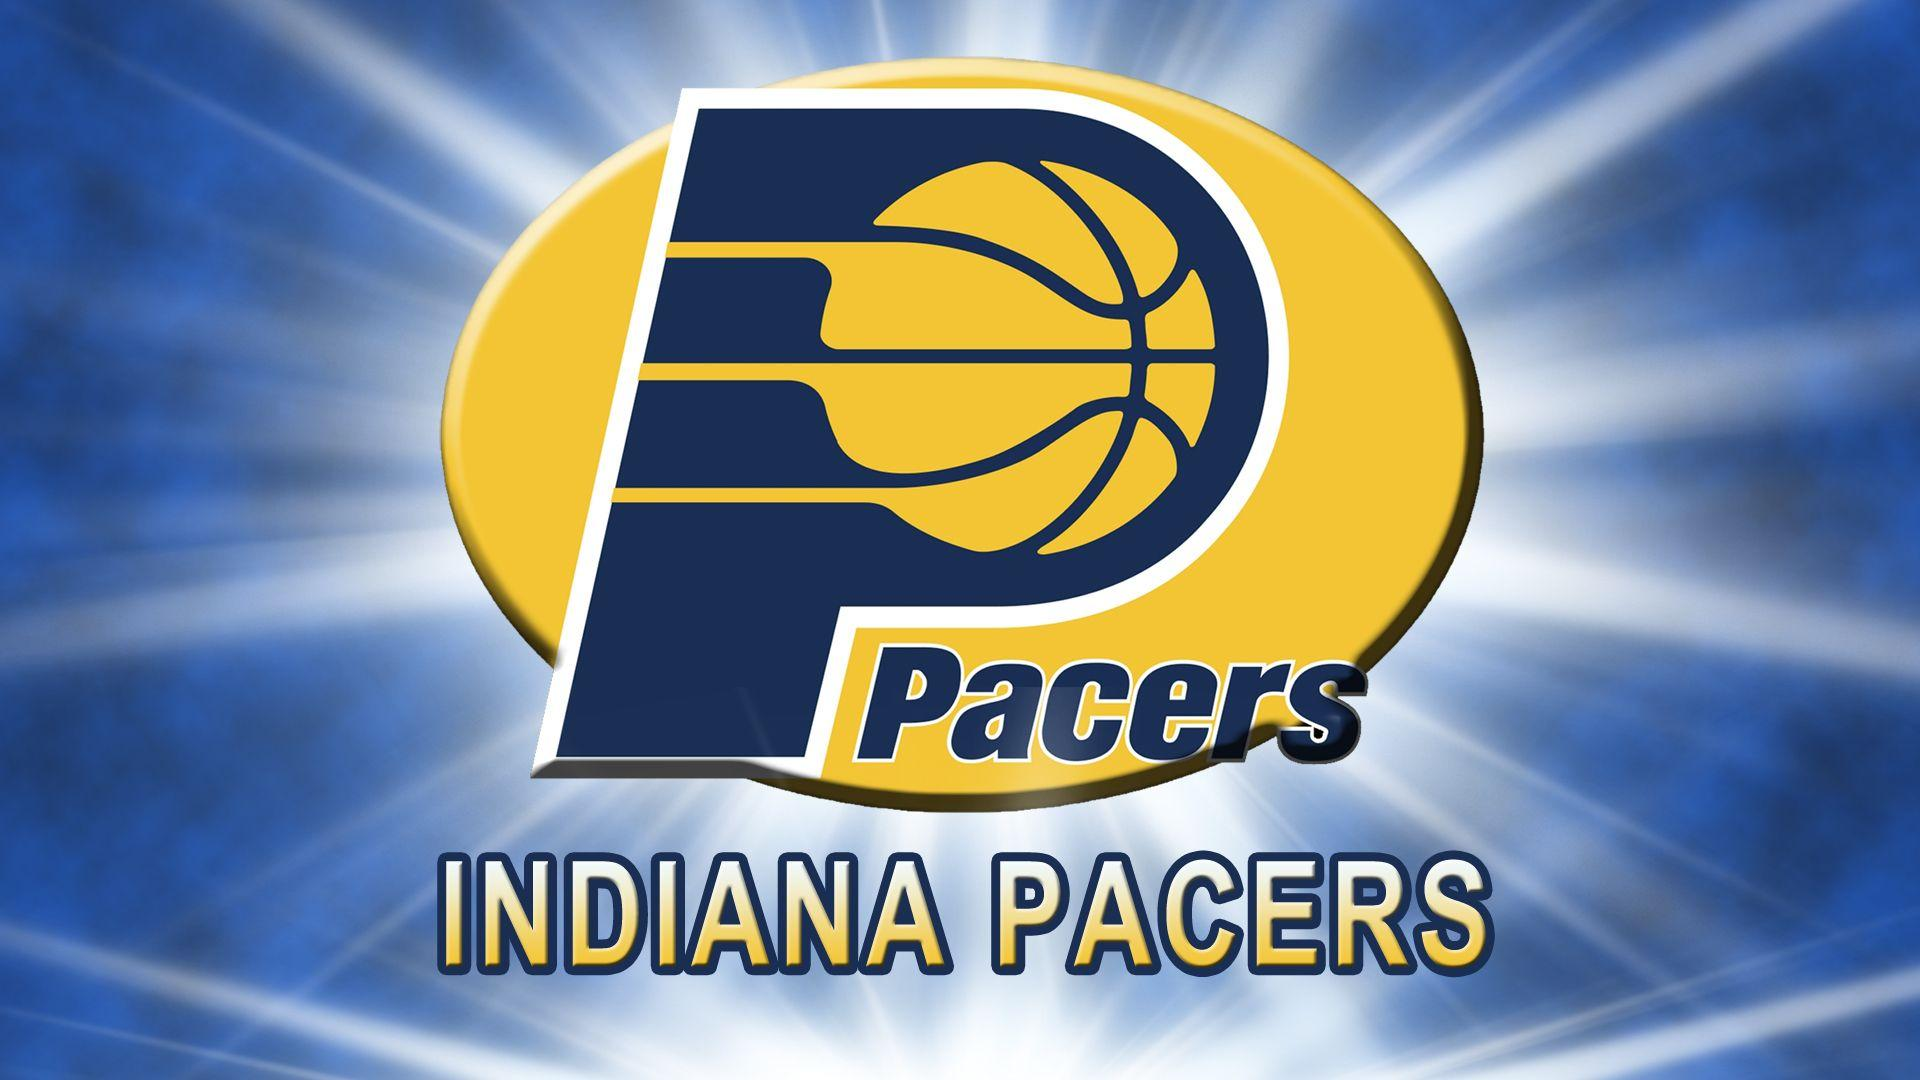 Indiana Pacers #756696 | Full HD Widescreen wallpapers for desktop ...